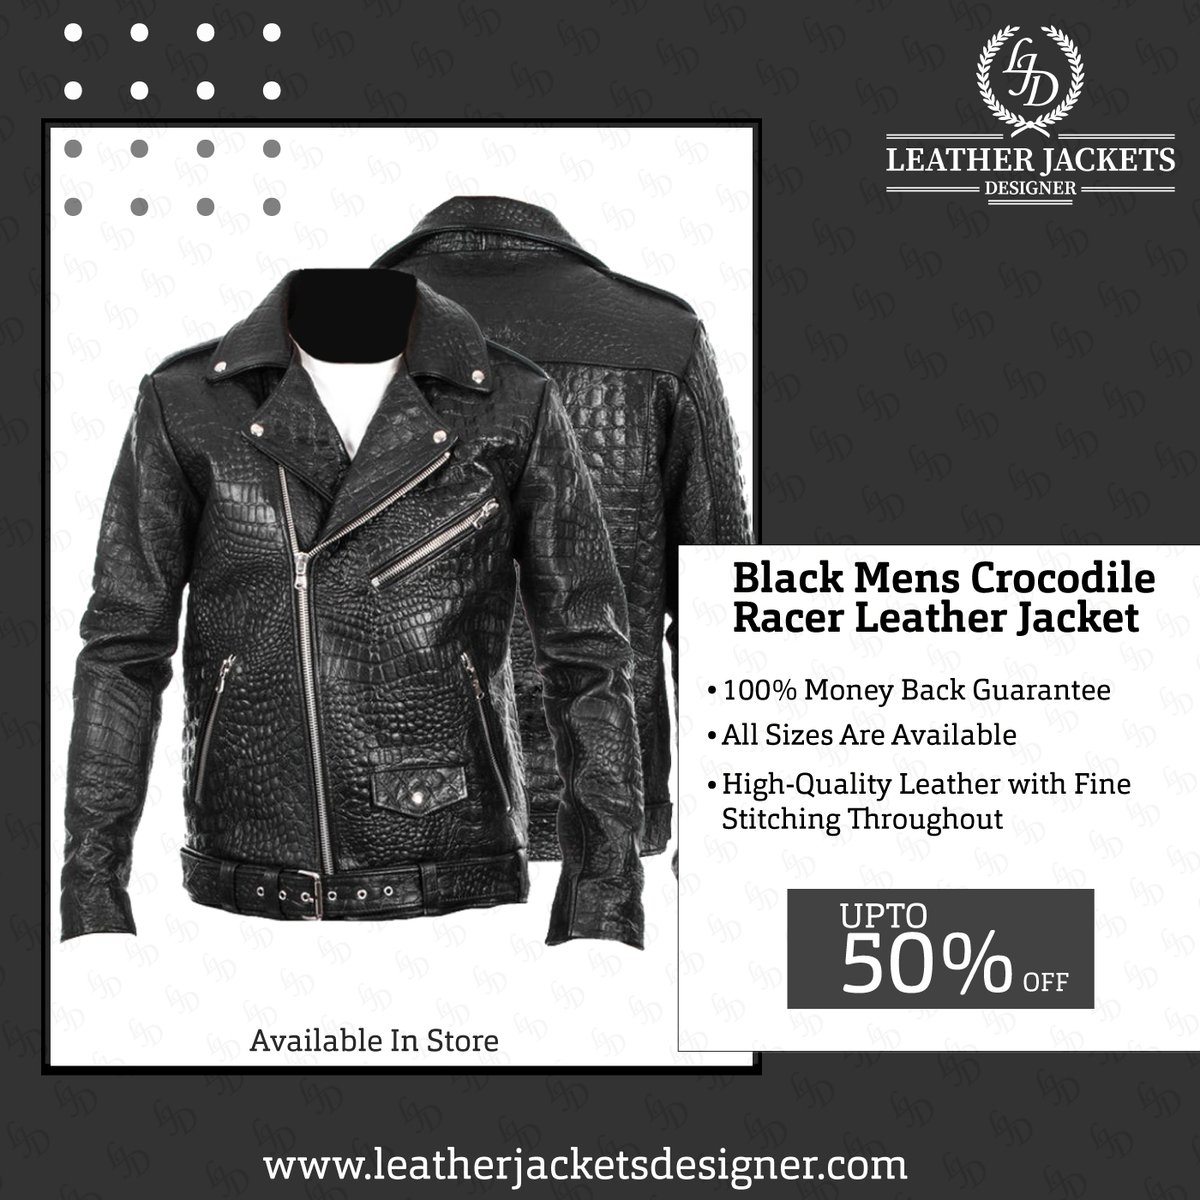 Black Moto Racer Leather Jacket   100% Money-Back Guarantee  All Sizes Are Available  High-Quality Leather with Fine Stitching Throughout  #leatherjackets #mensfashion #jacketsformen #mensjacket #fashion #style #trends #famousjackets #onlinestore #sale #LJDStorepic.twitter.com/mVaqySlvFX